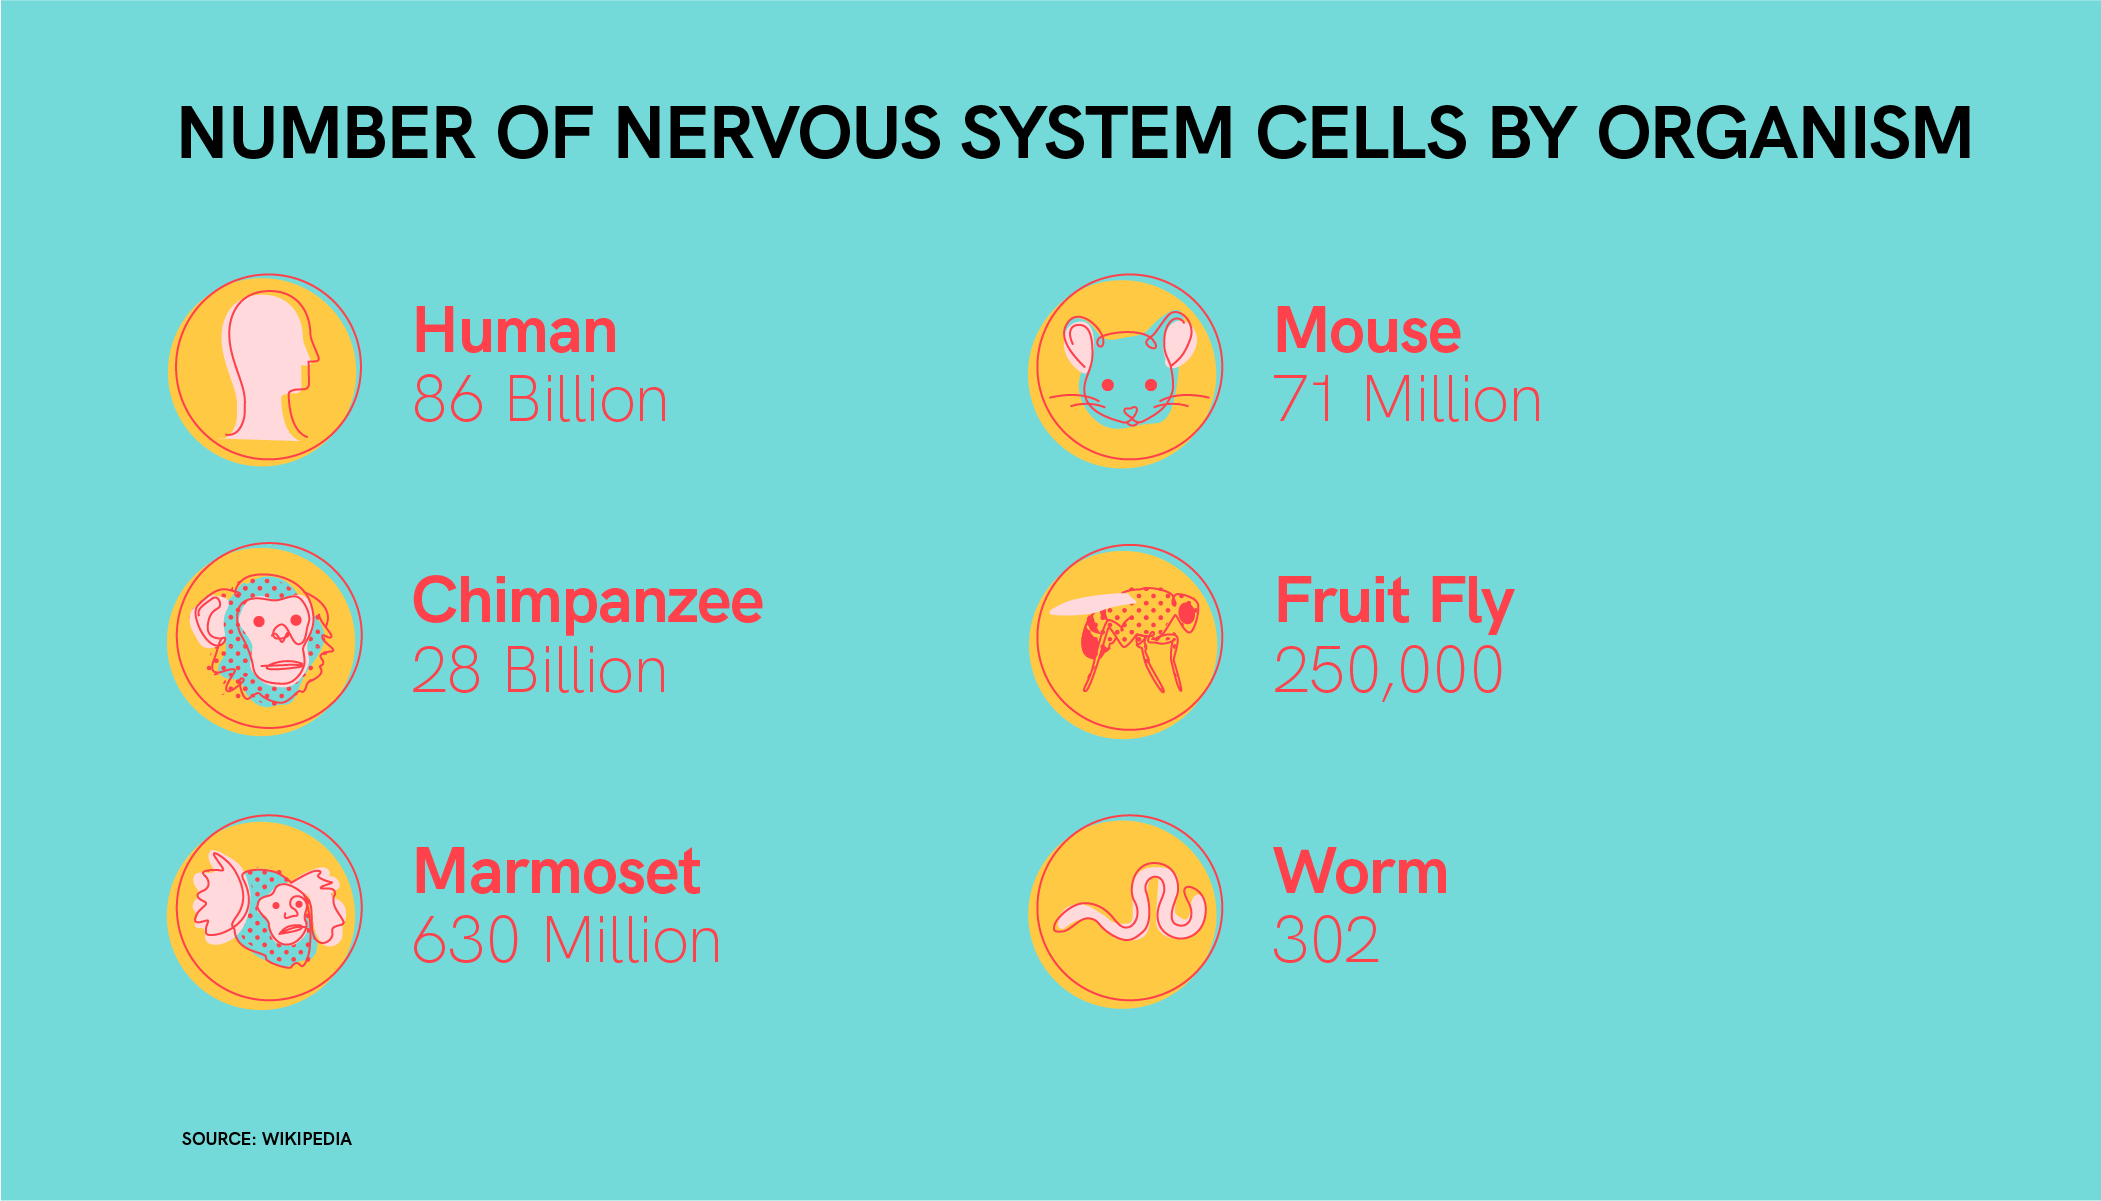 Illustrated comparison chart of the number of nervous systems cells in a variety of organisms from the human with 86 billions cells to the worm with 302 cells.